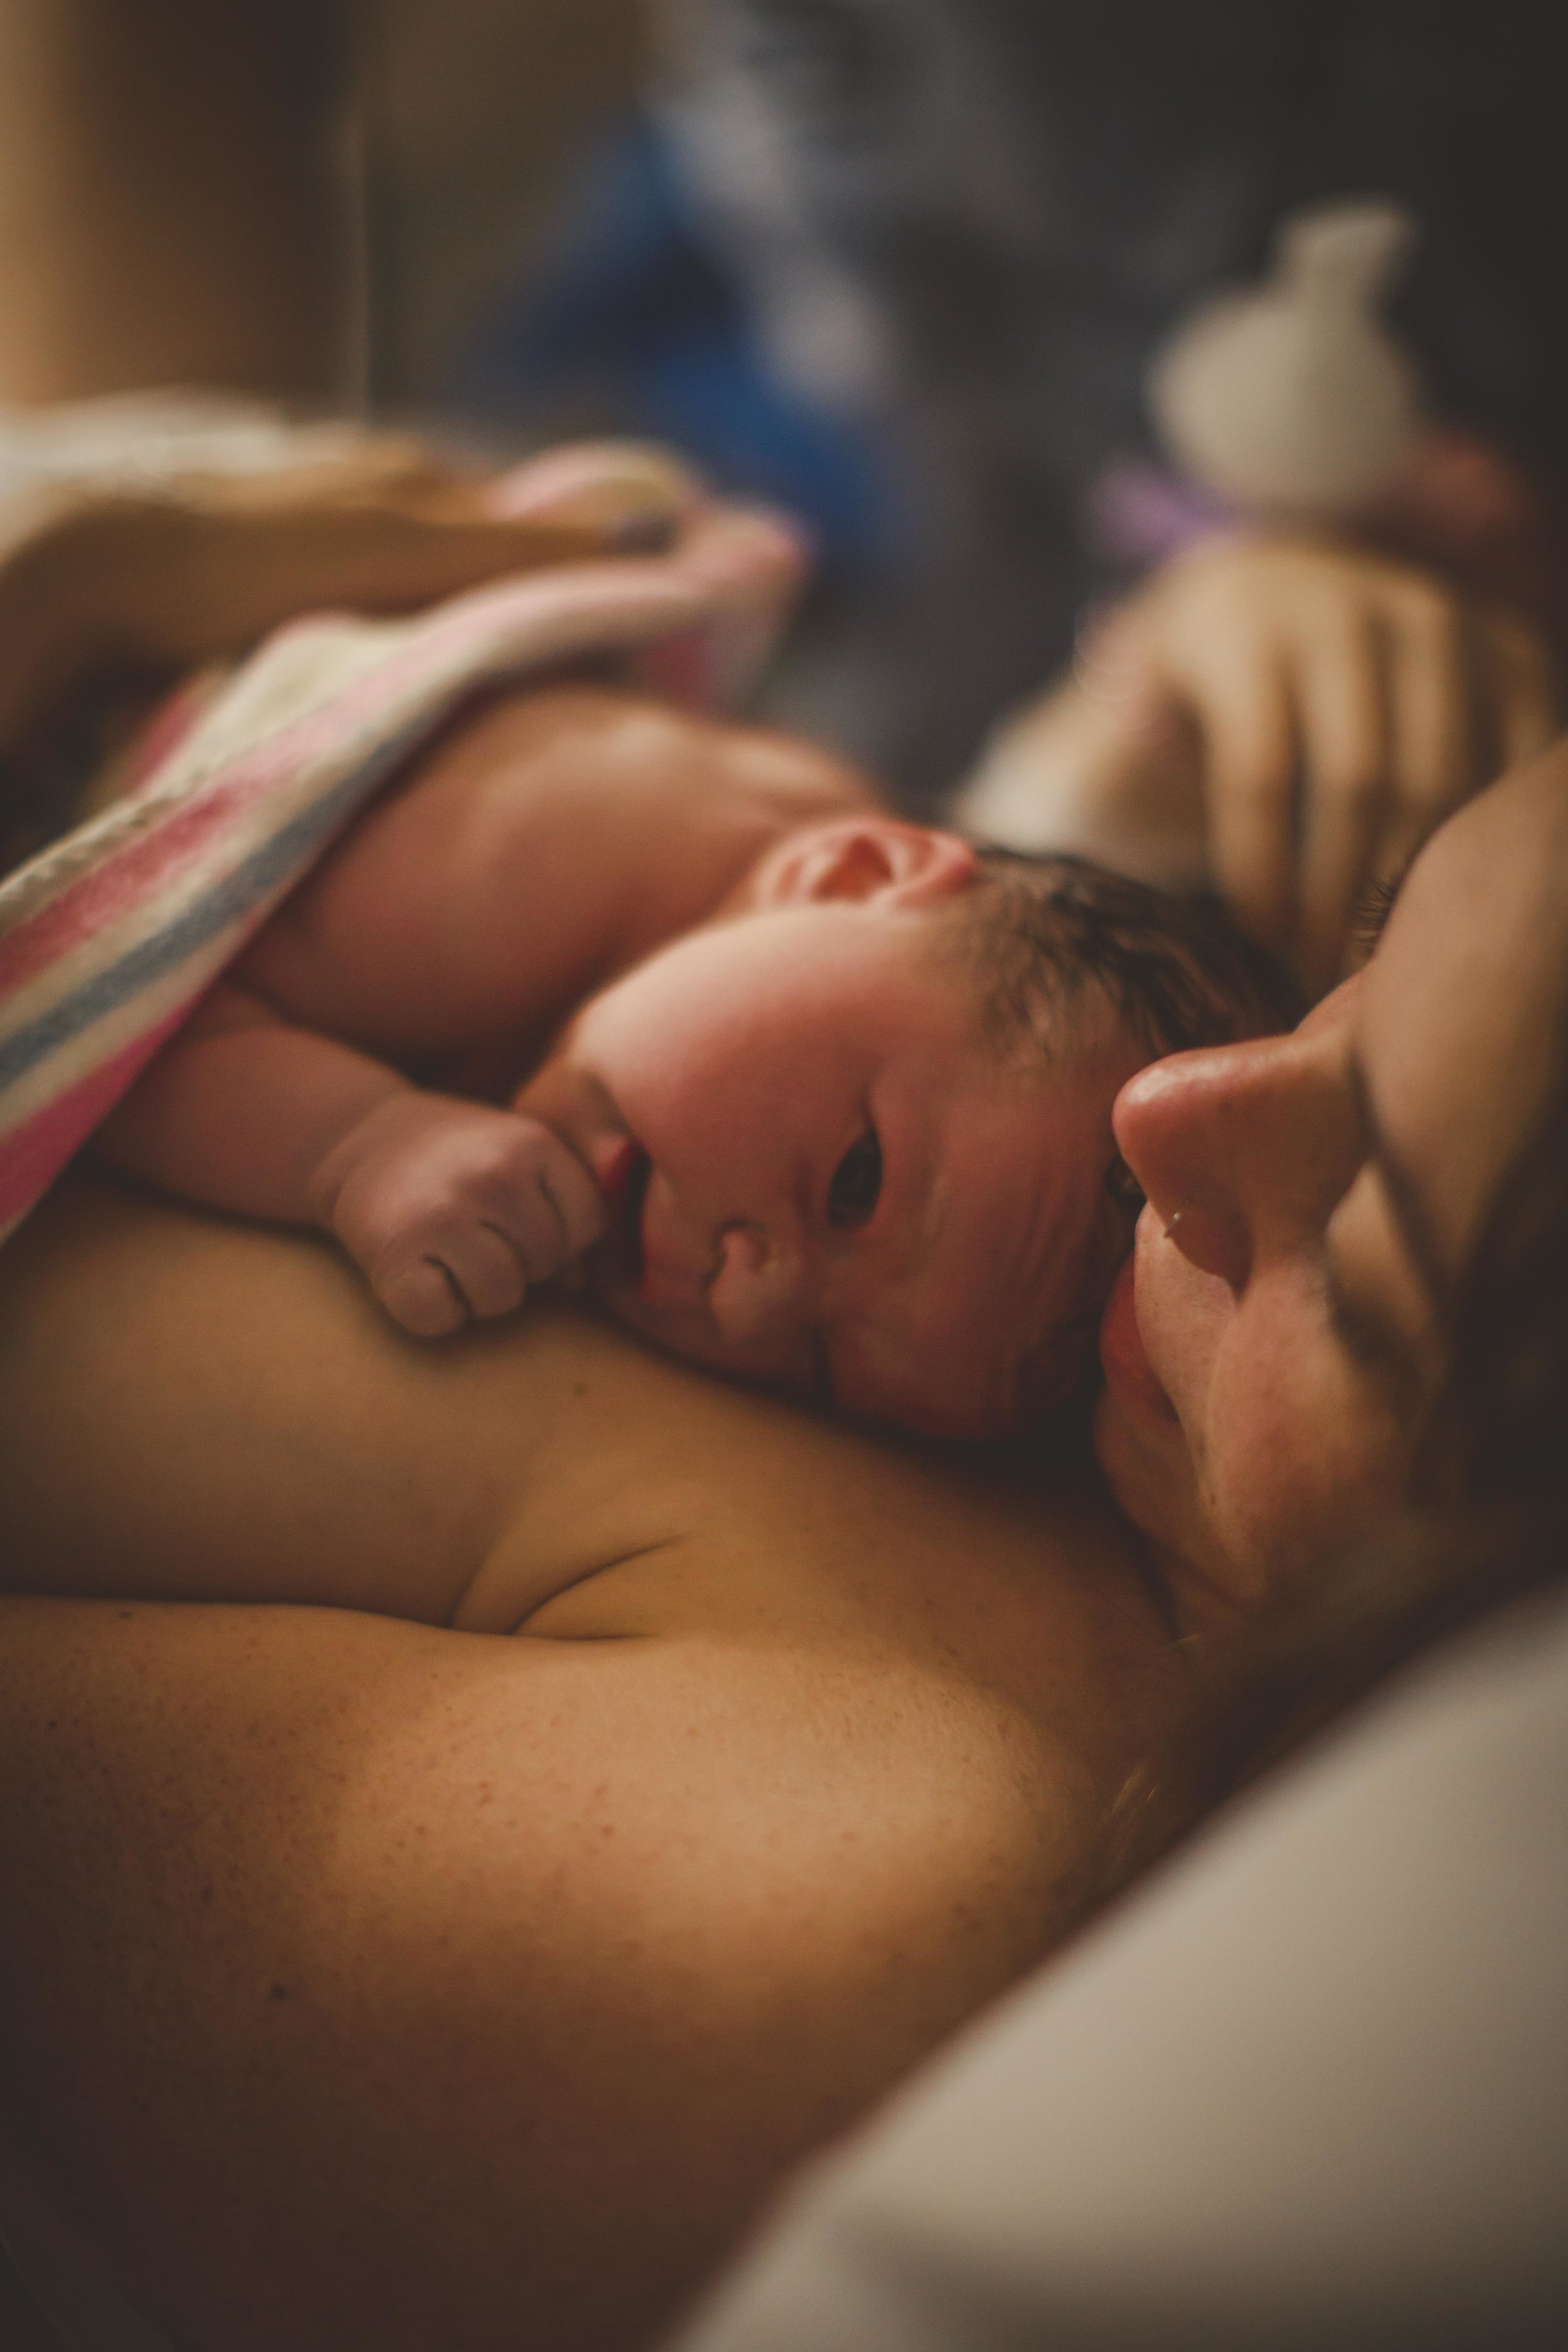 newborn resting on mother's chest after birth